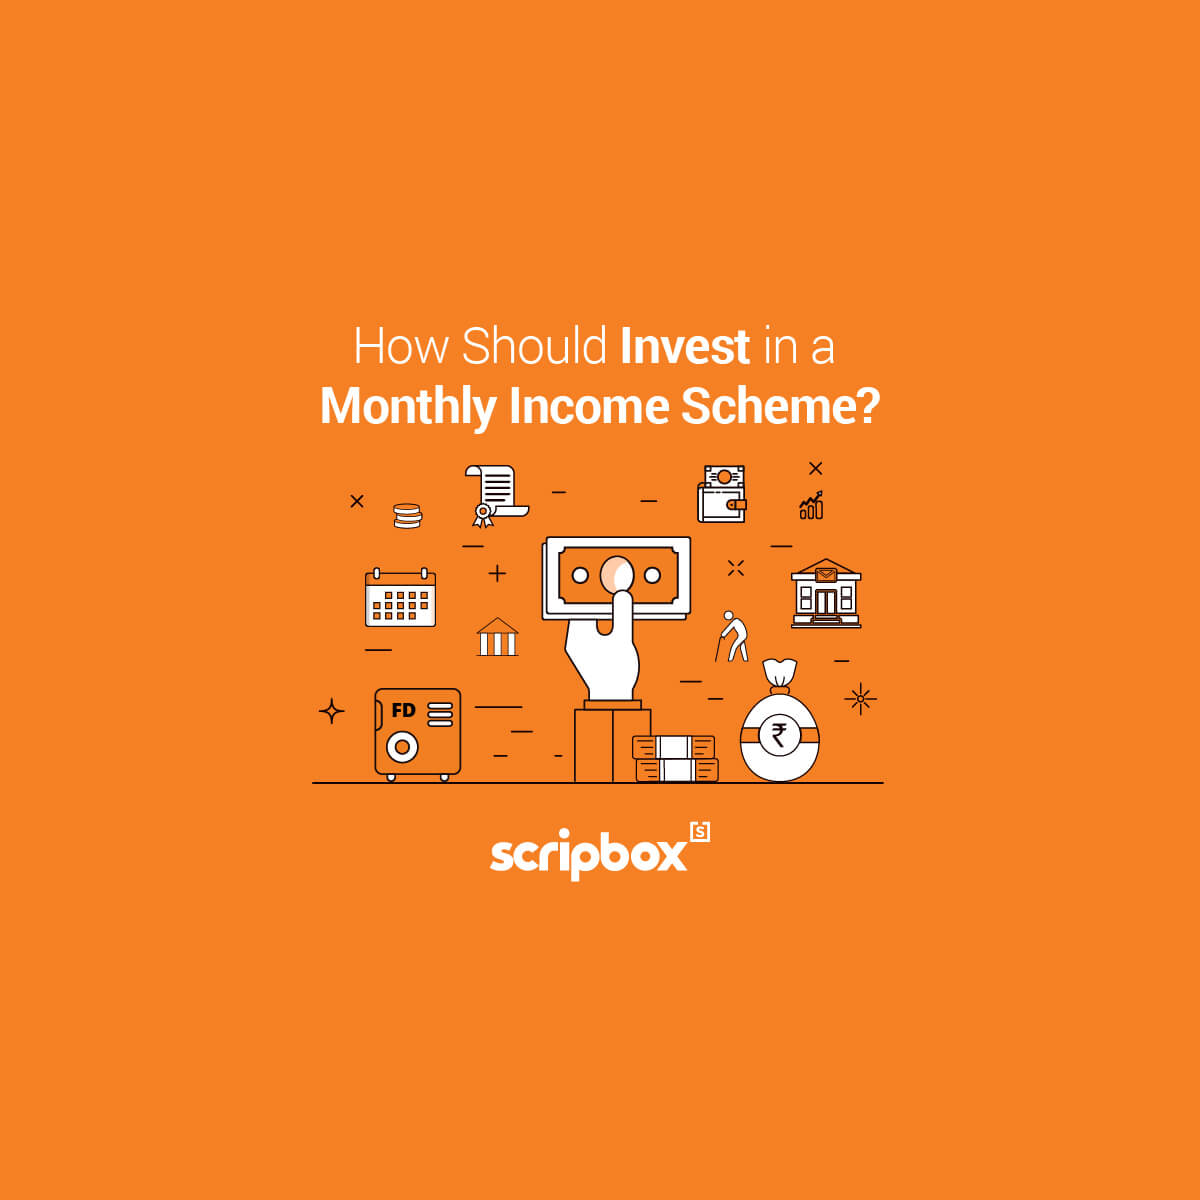 monthly income scheme